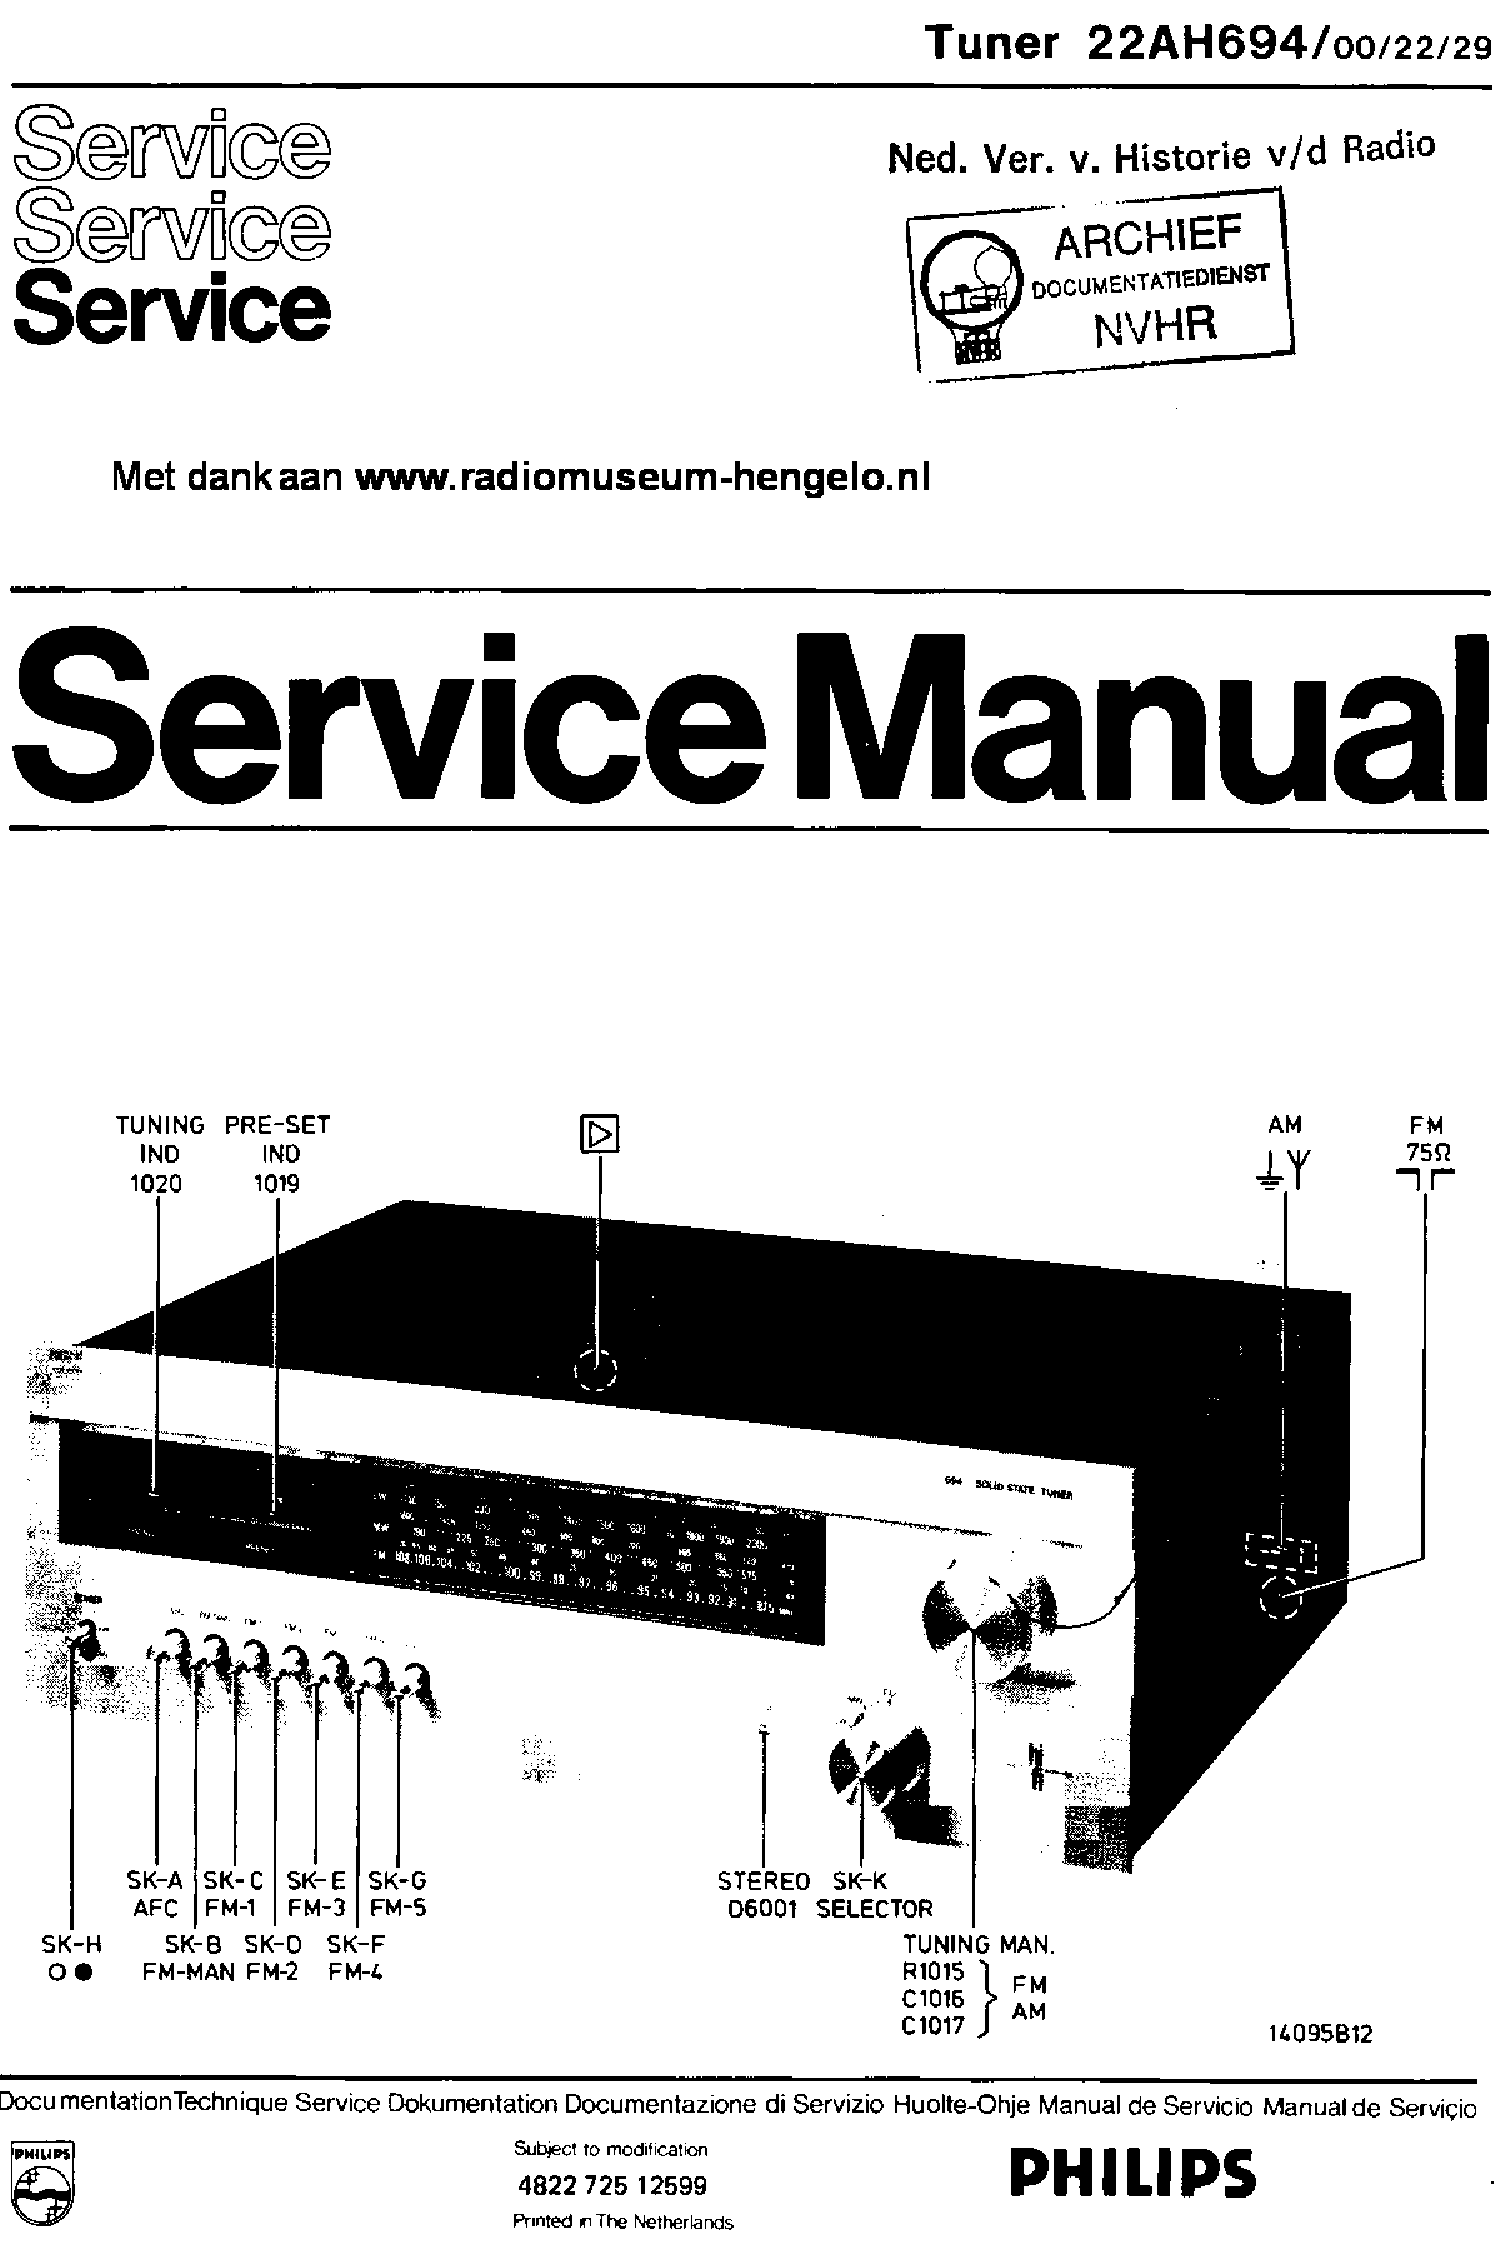 PHILIPS 22AH694-00-22-29 STEREO TUNER SM Service Manual